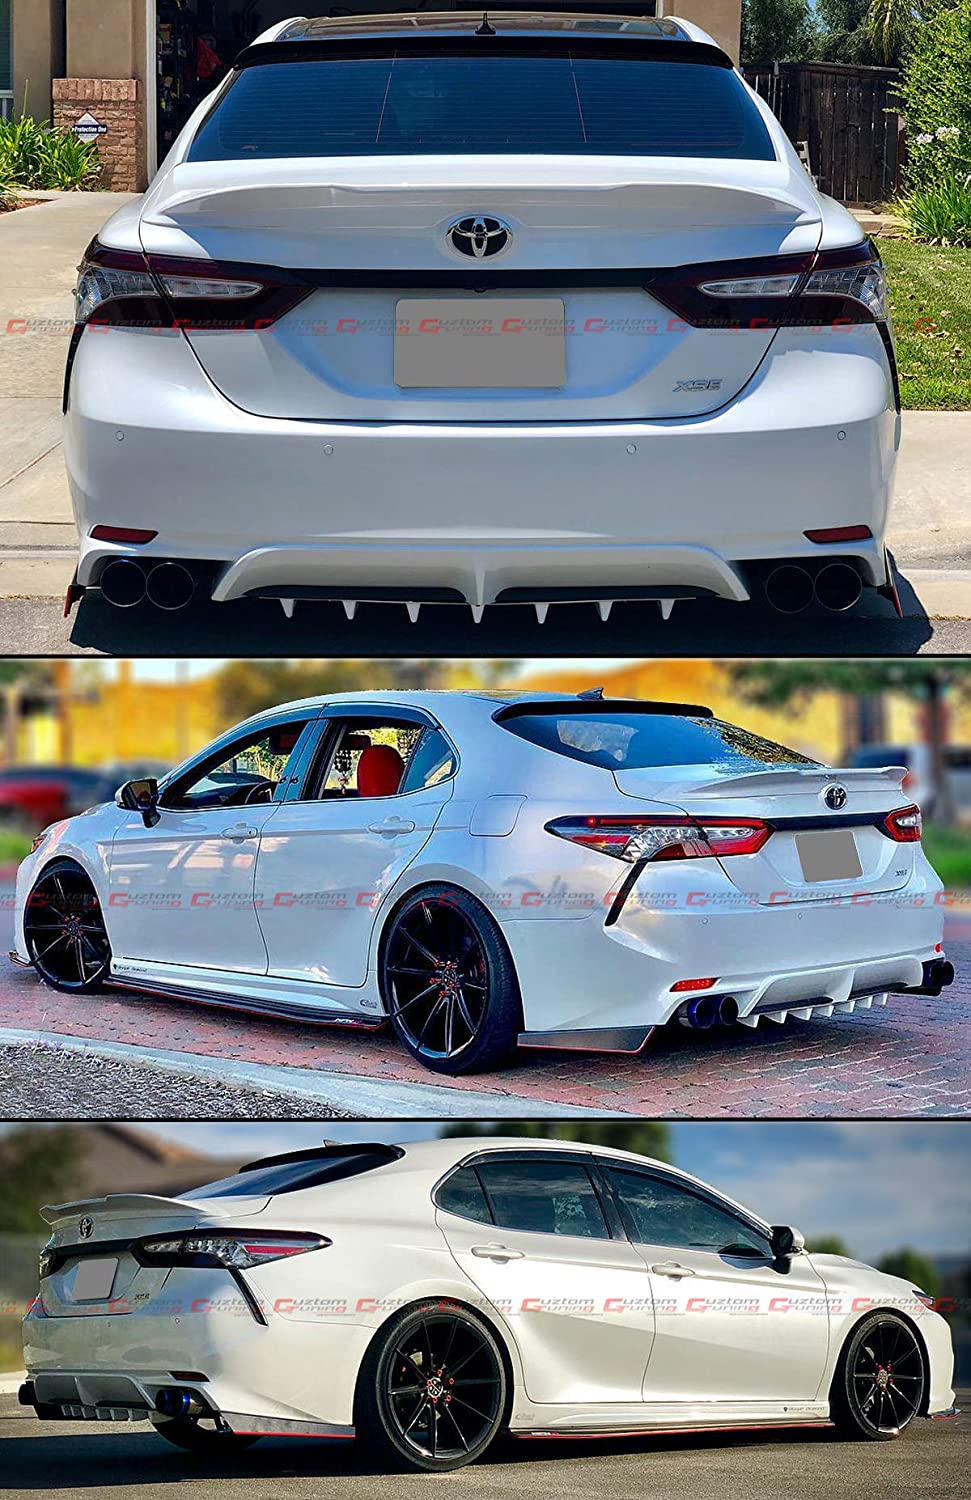 Cuztom Tuning Fits for 2018 2019 Toyota Camry LE XLE SE XSE TR Style High Kick Duckbill Rear Trunk LID Spoiler Wing Painted Pearl White